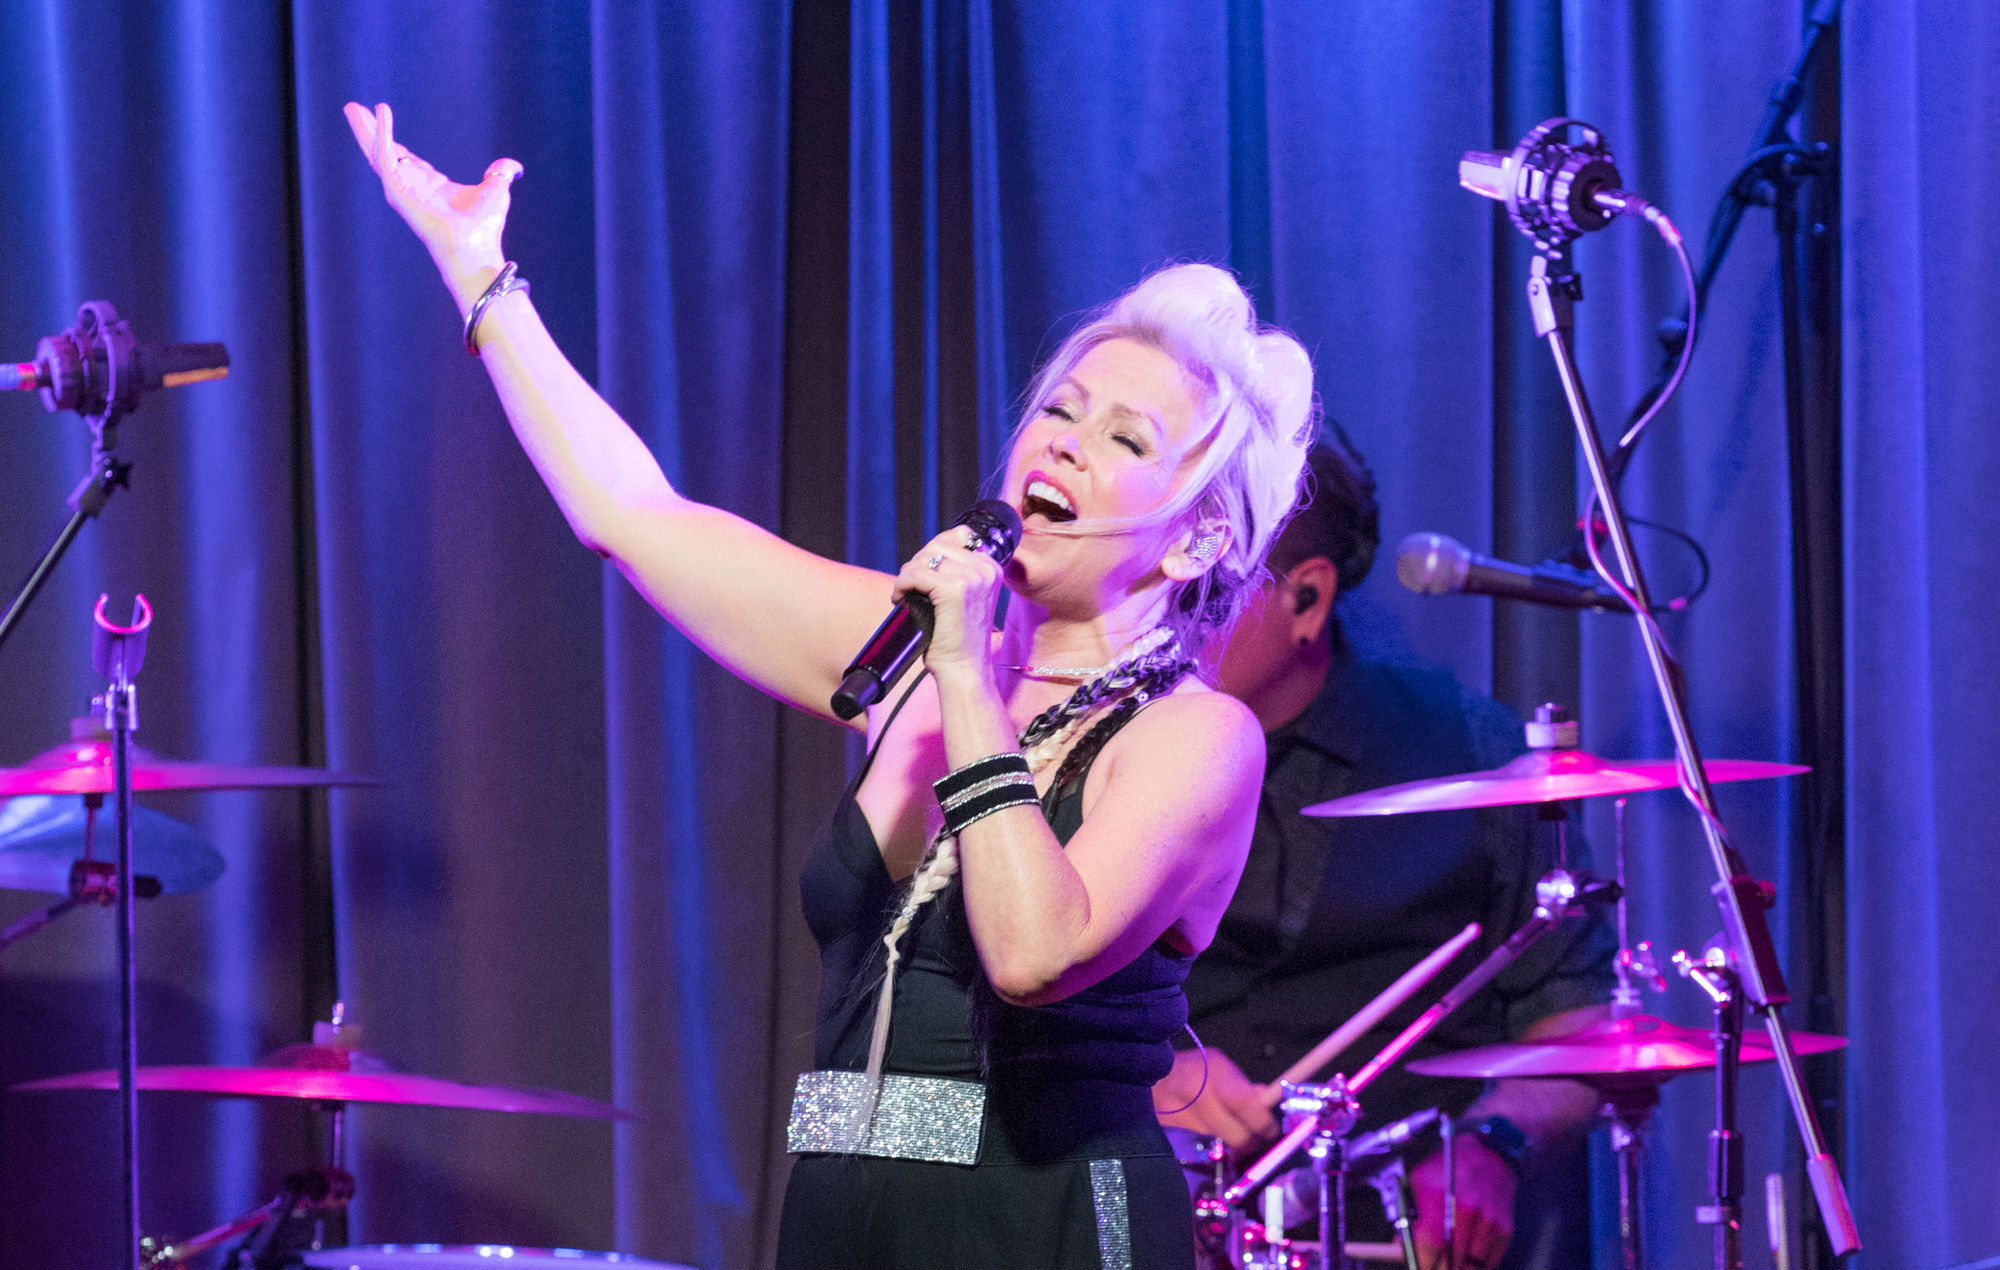 Berlin's Terri Nunn issues apology after playing at controversial Mar-a-Lago NYE party